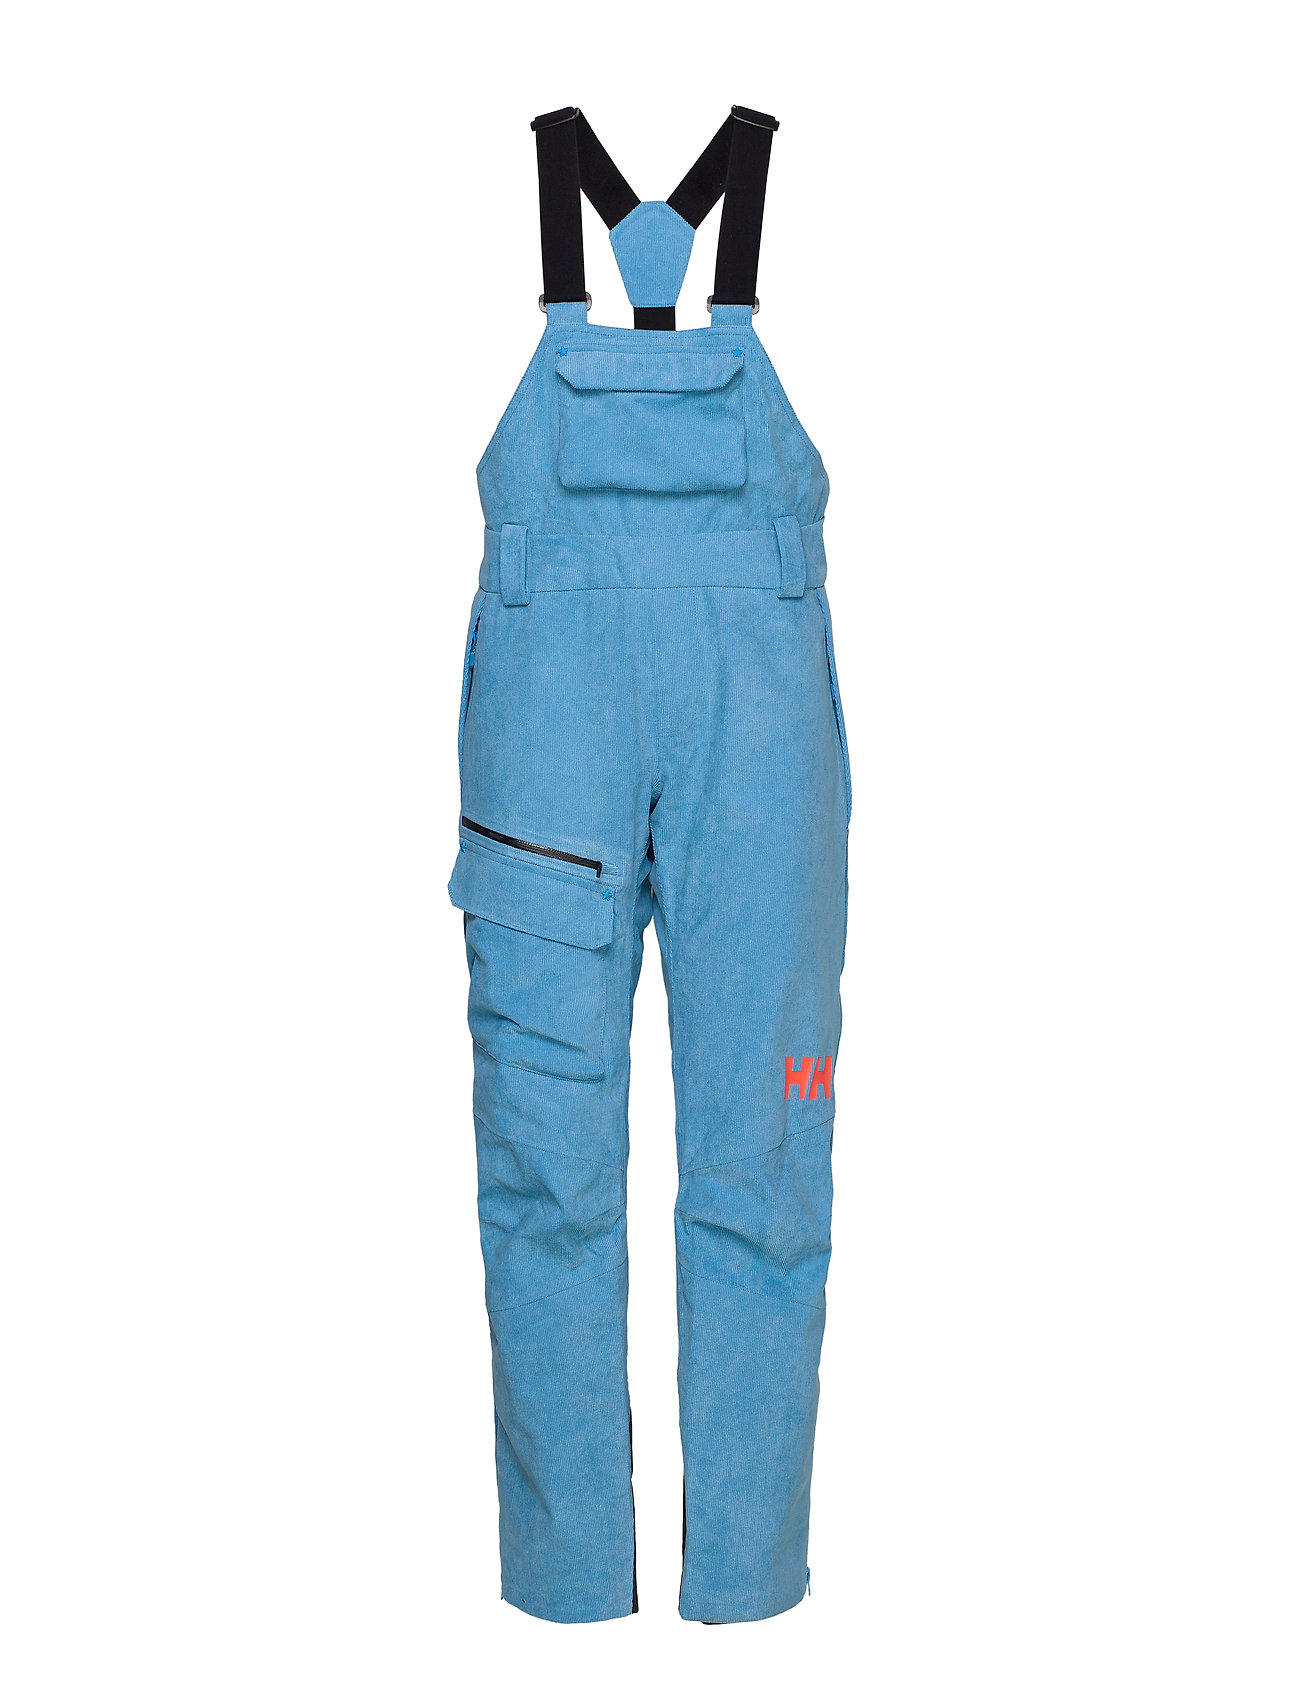 Helly Hansen W POWDERQUEEN BIB PANT - BLUEBELL